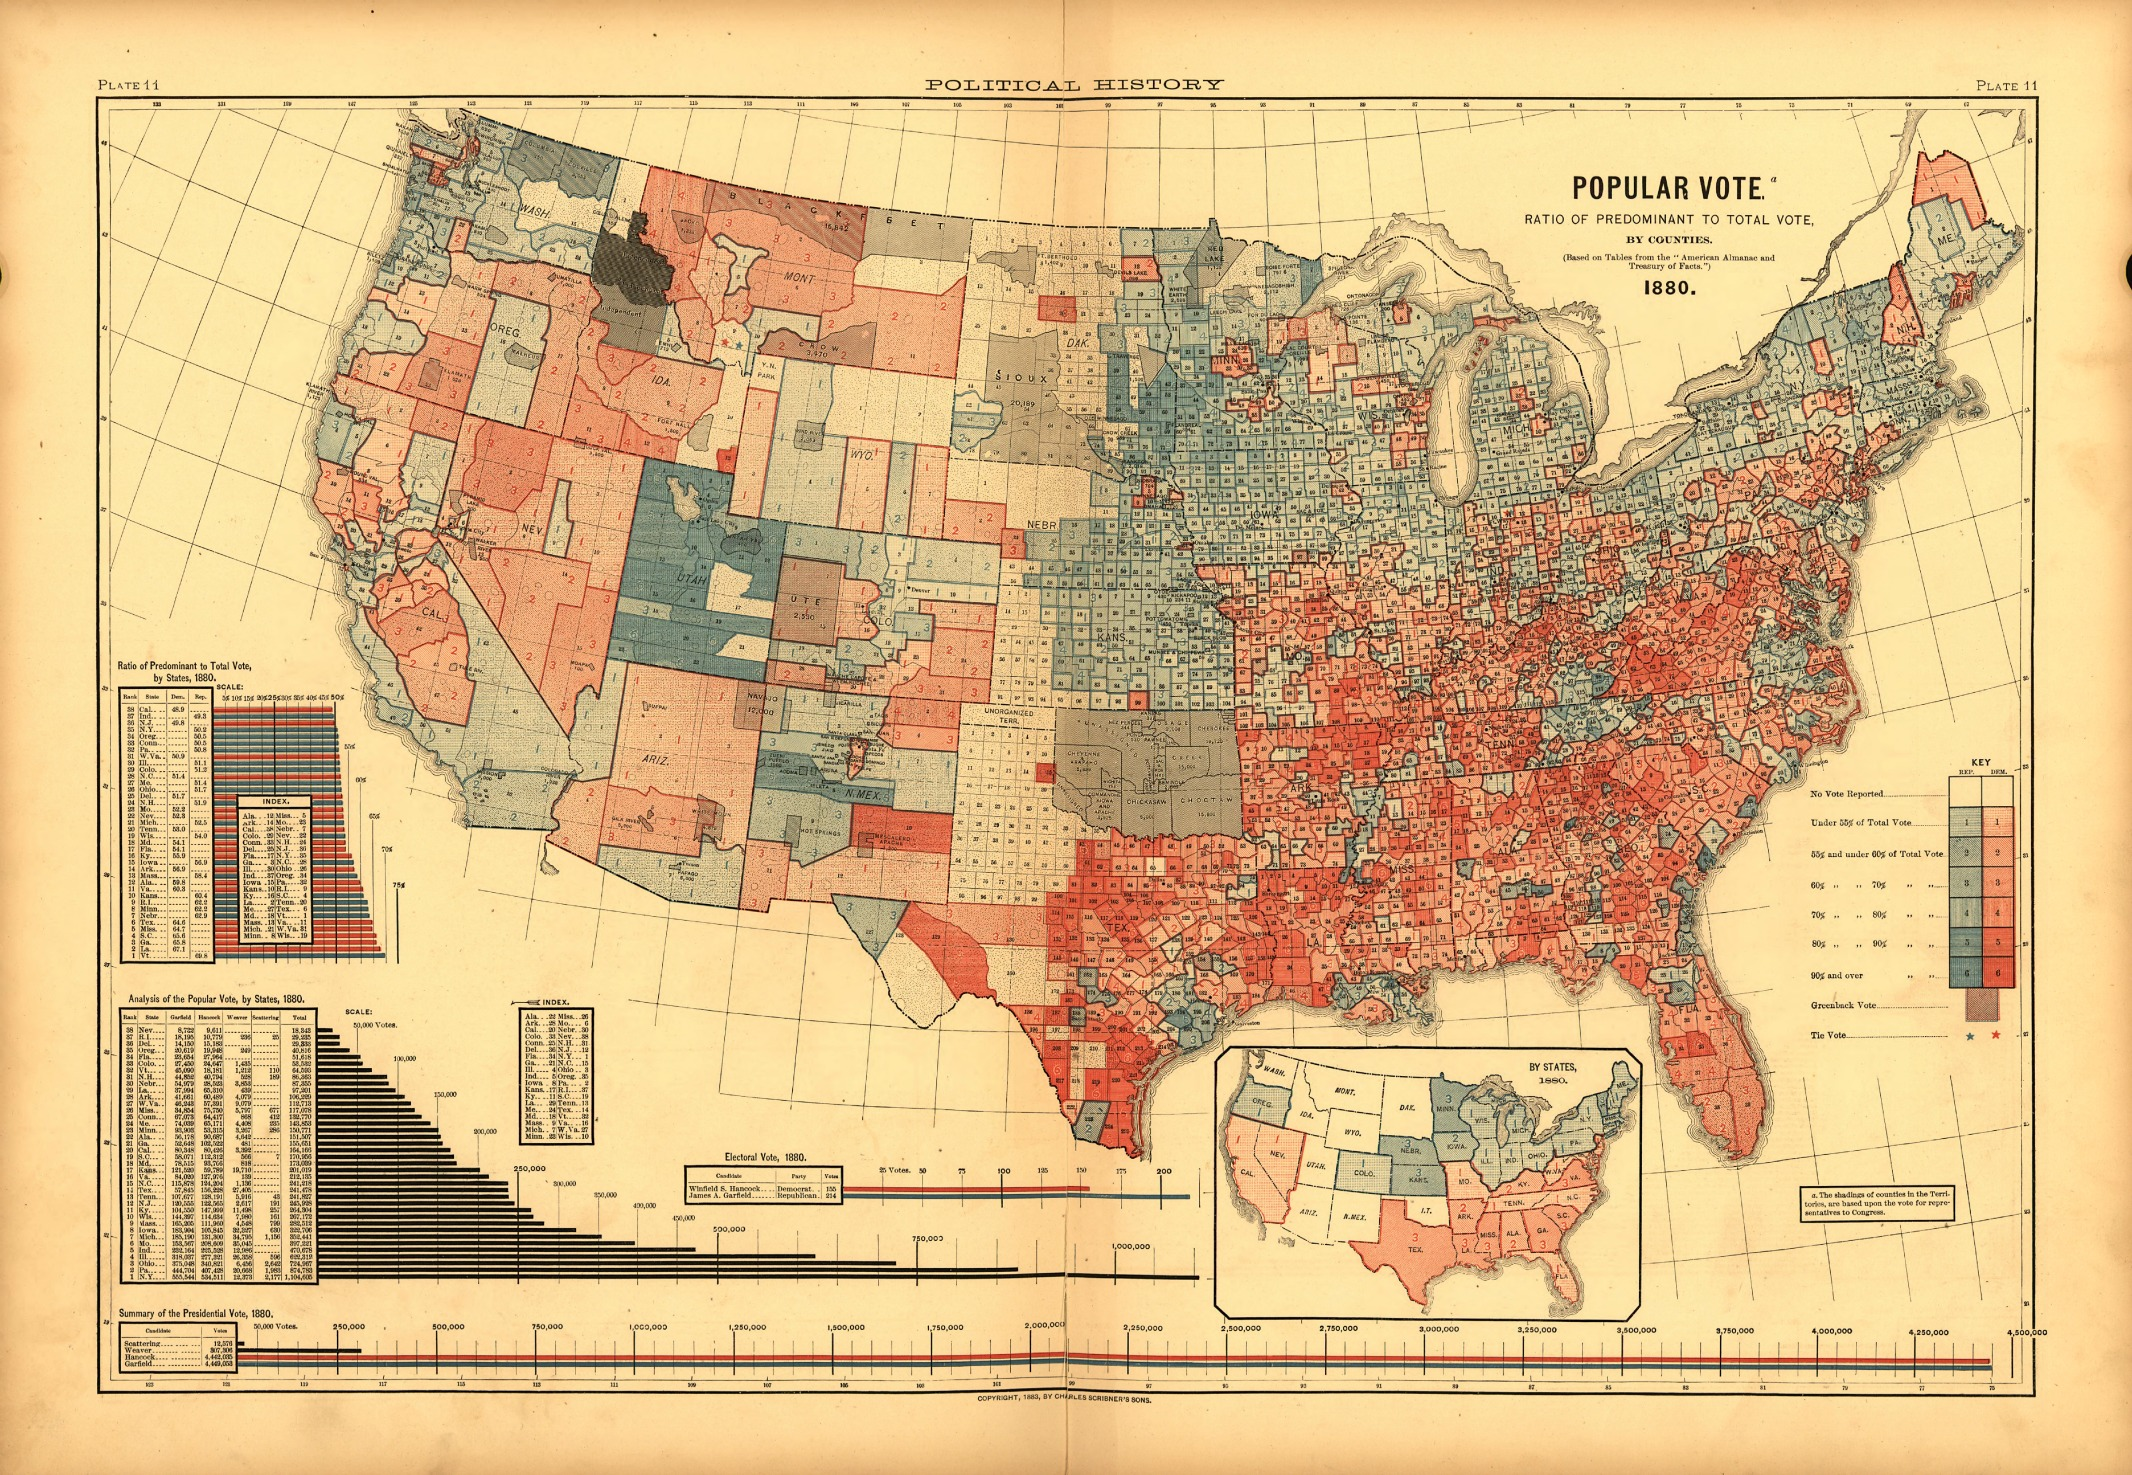 Scribners 1880 Popular Vote Map